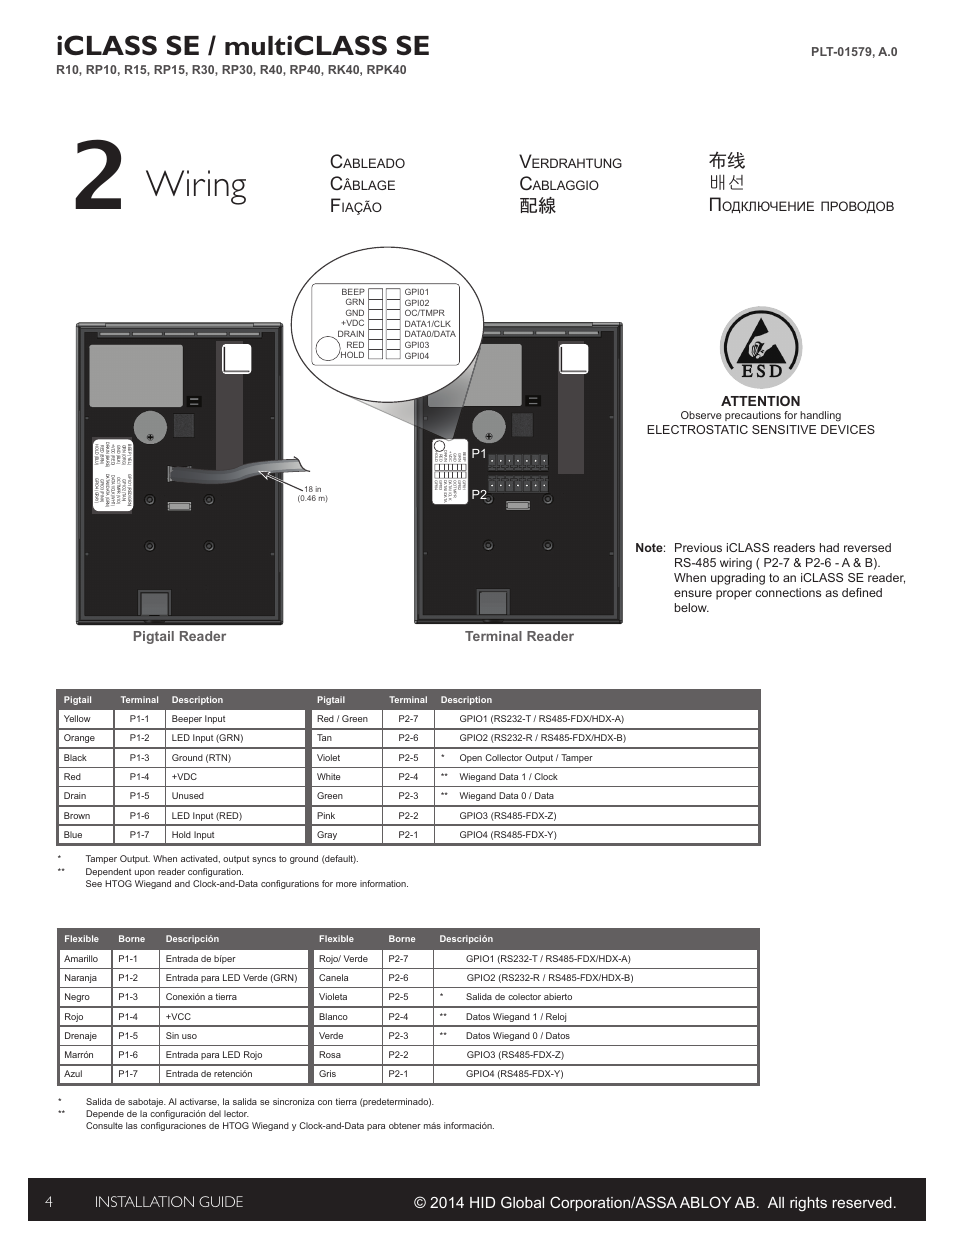 hid rp40 wiring diagram diagrams honeywell wiring diagram